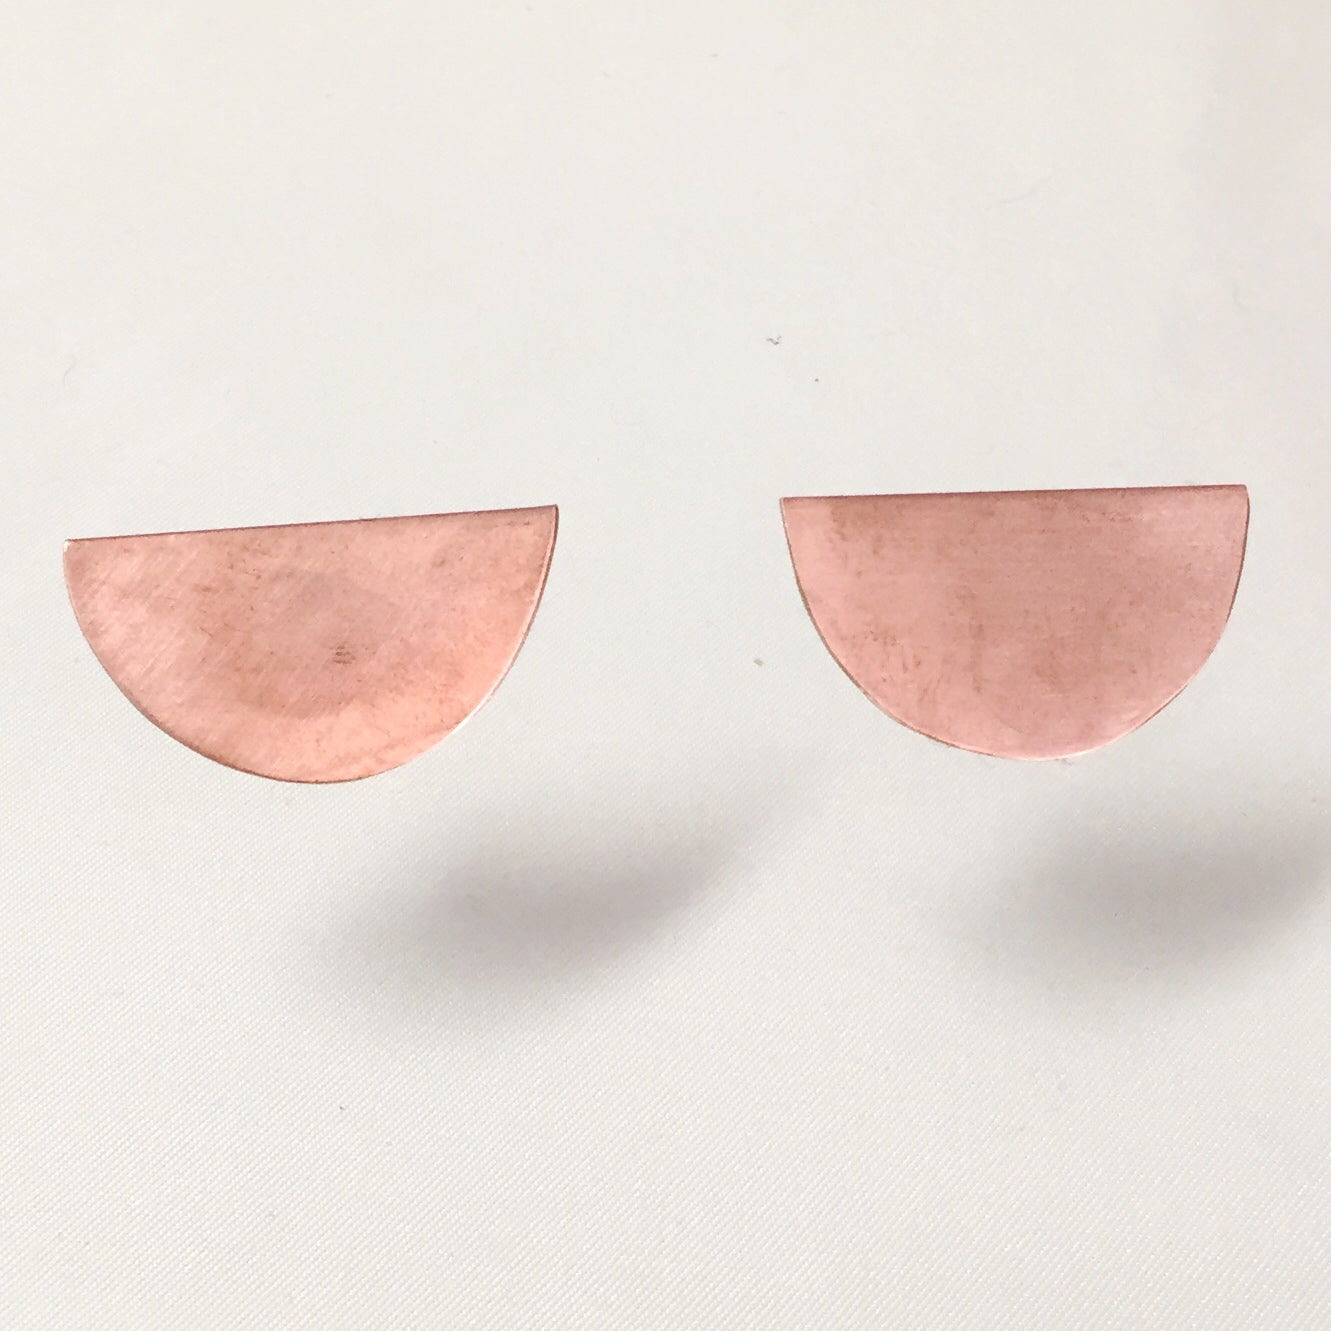 Image of Copper Half Moon Earrings